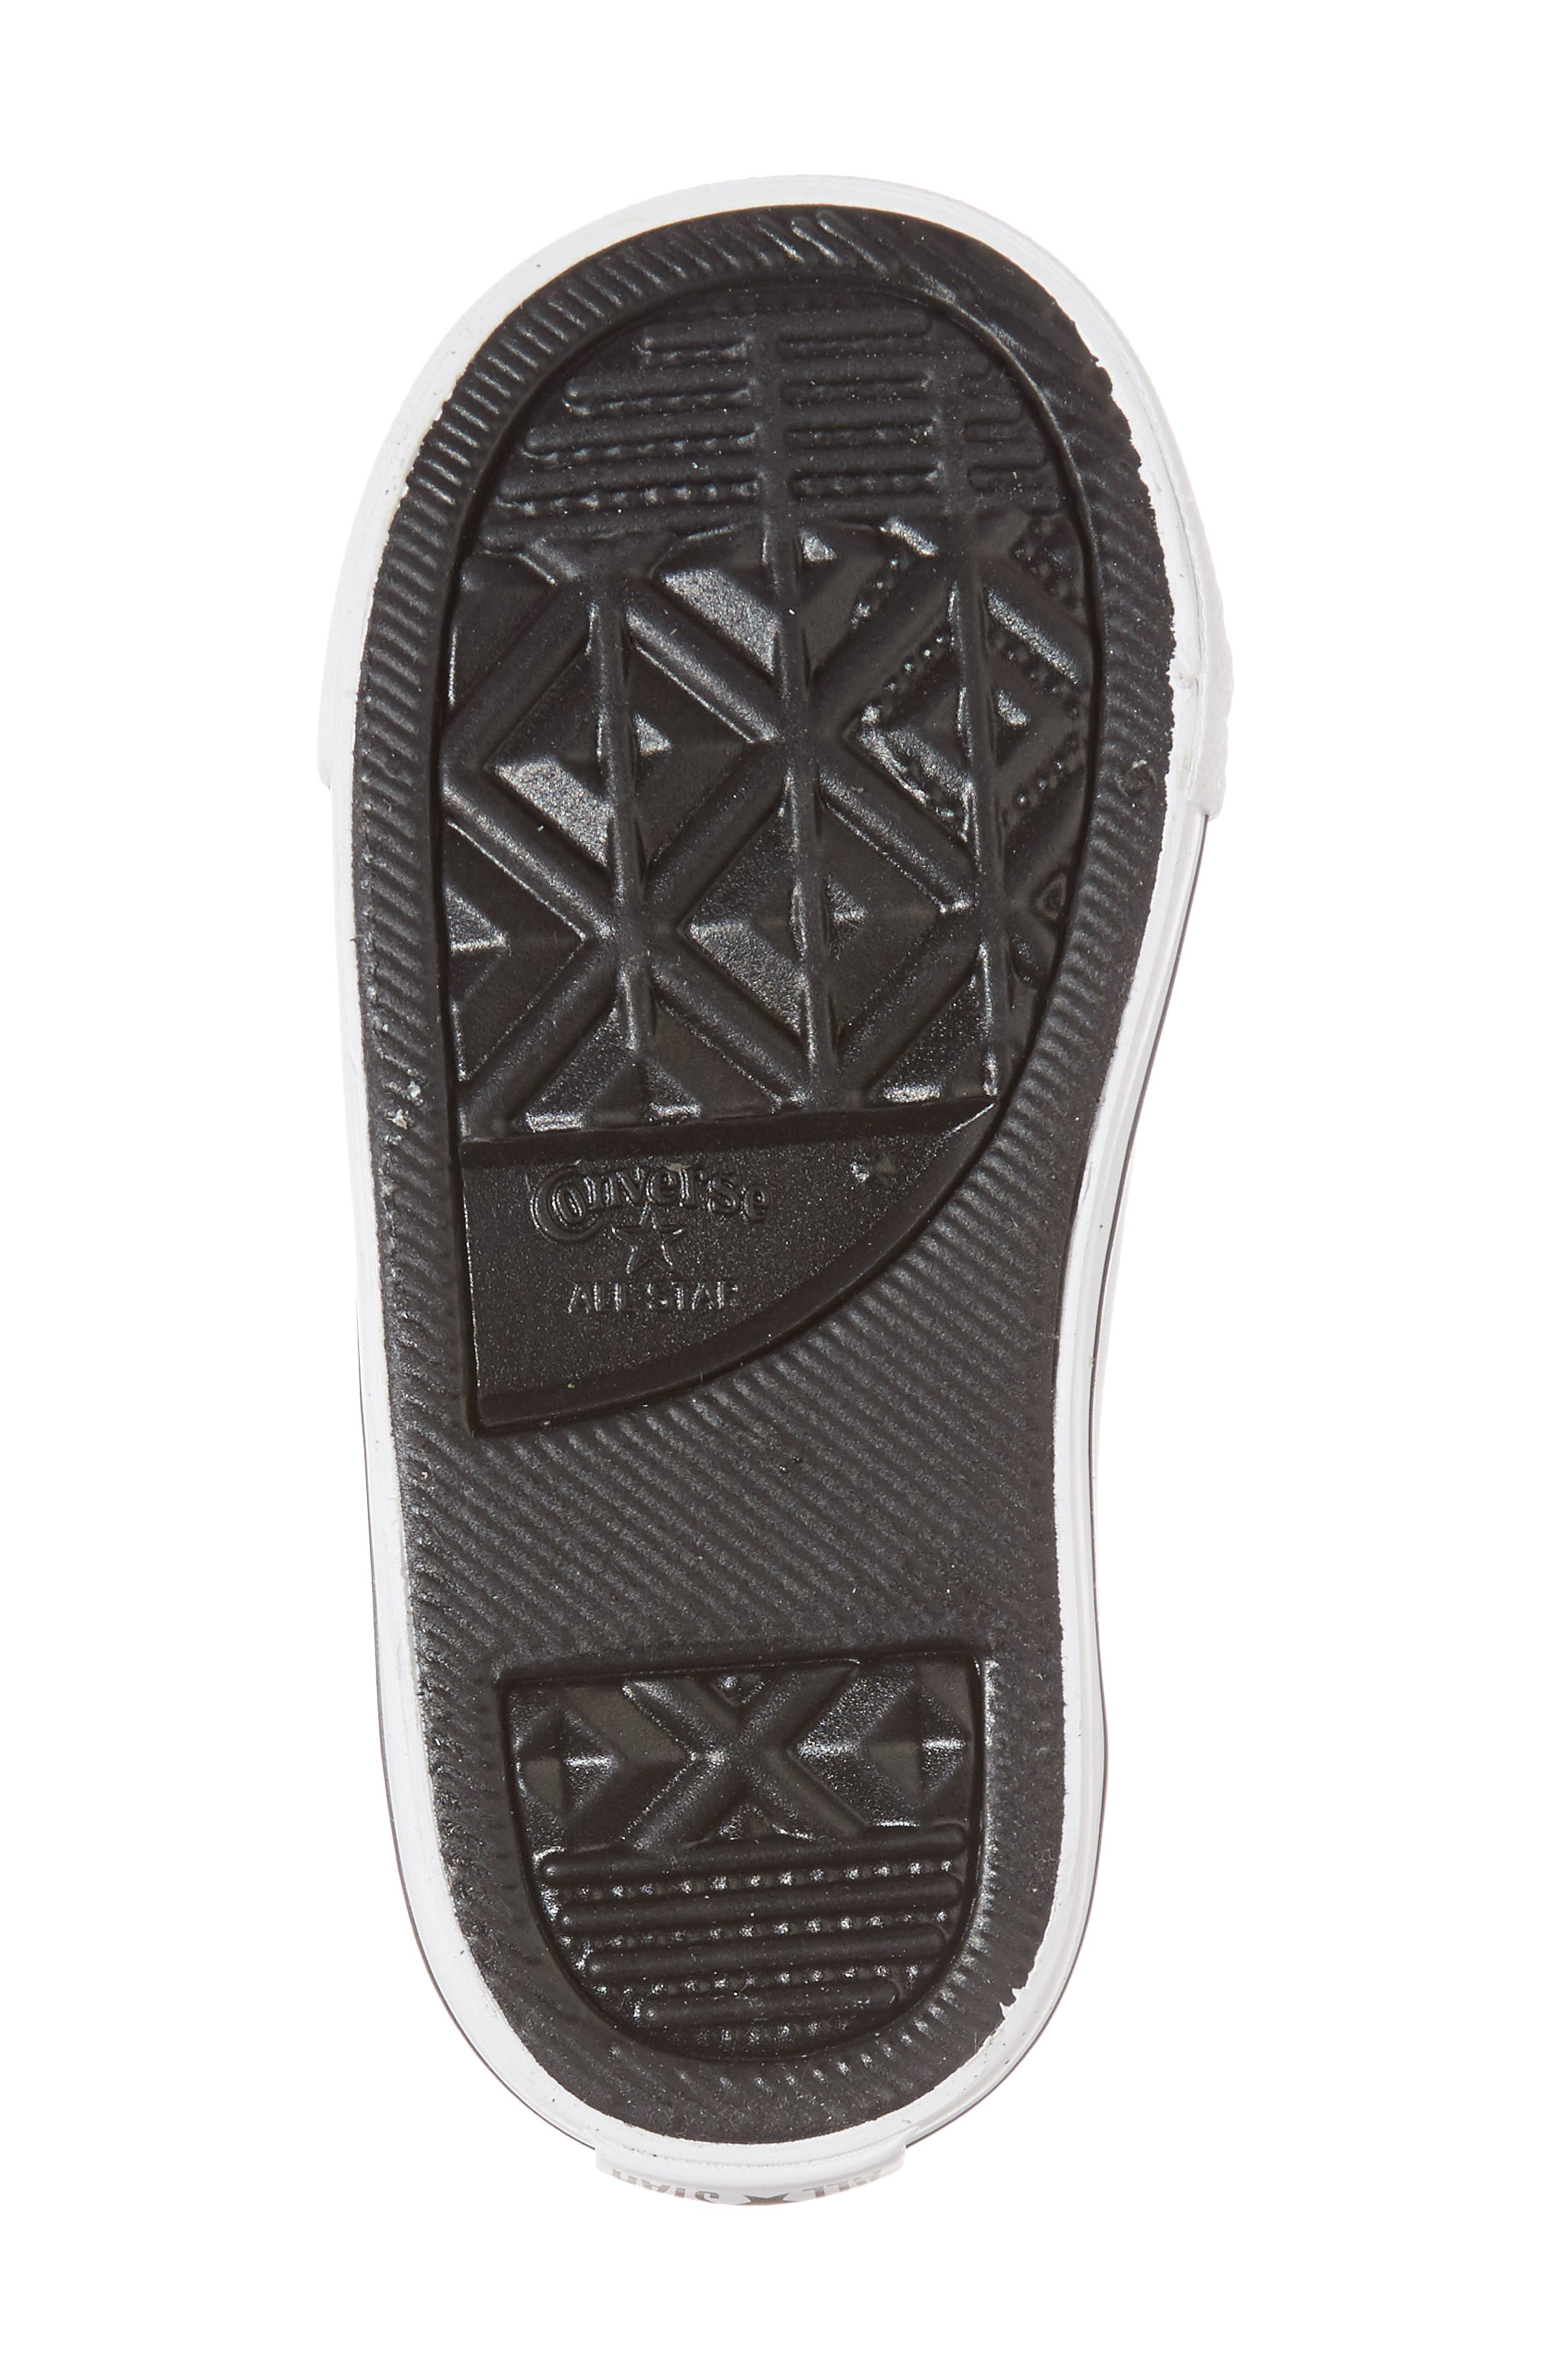 All Star<sup>®</sup> 2V Low Top Sneaker,                             Alternate thumbnail 6, color,                             270